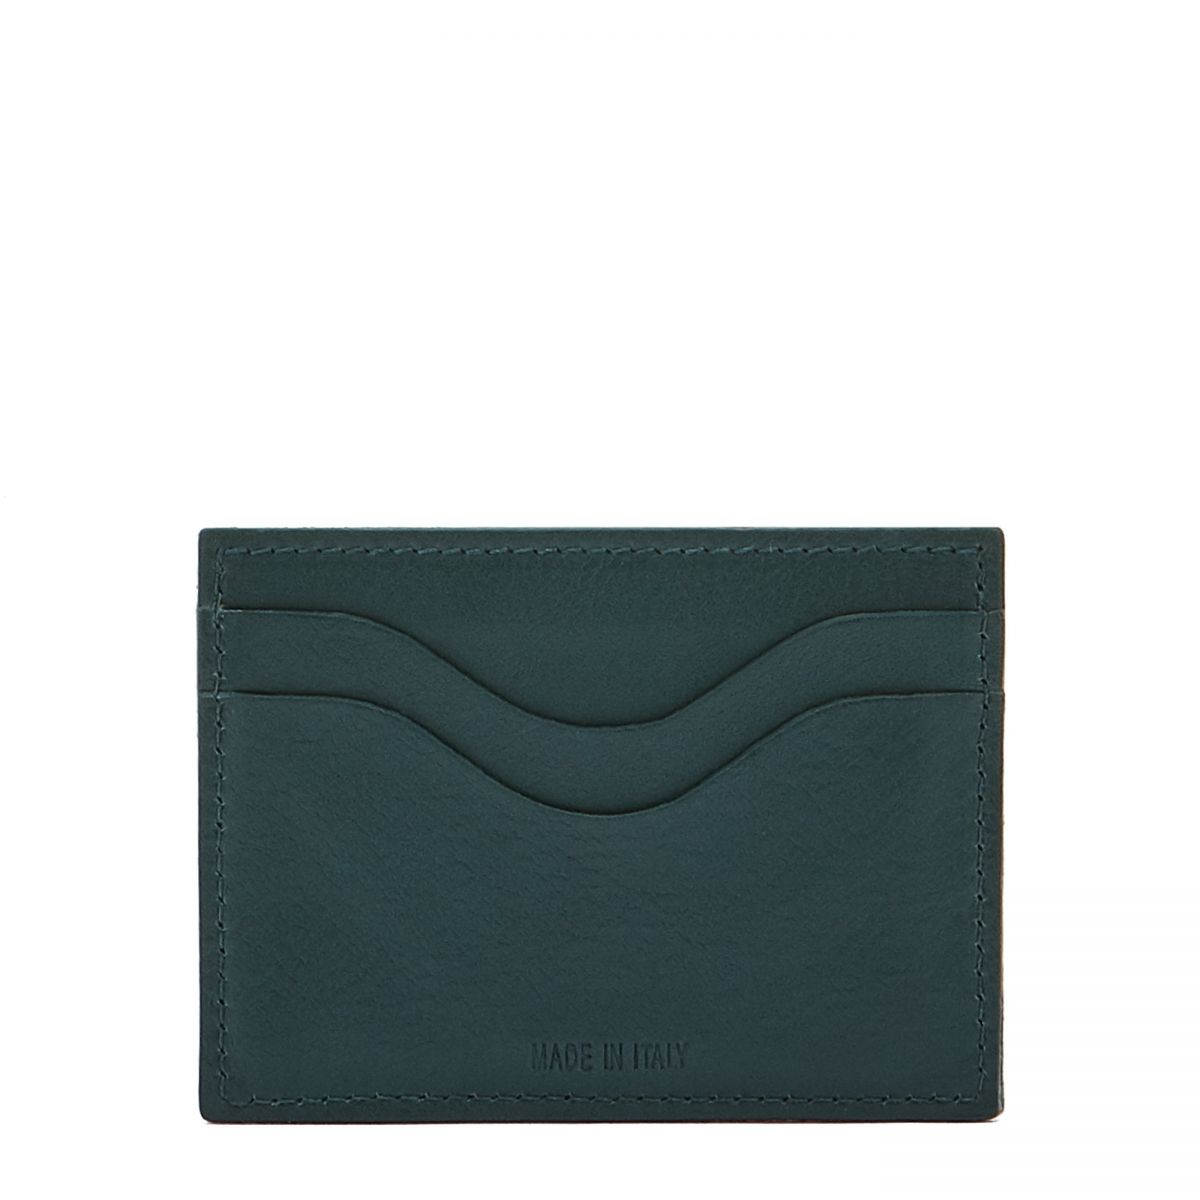 Card Case  in Cowhide Leather SCC050 color Rosemary | Details